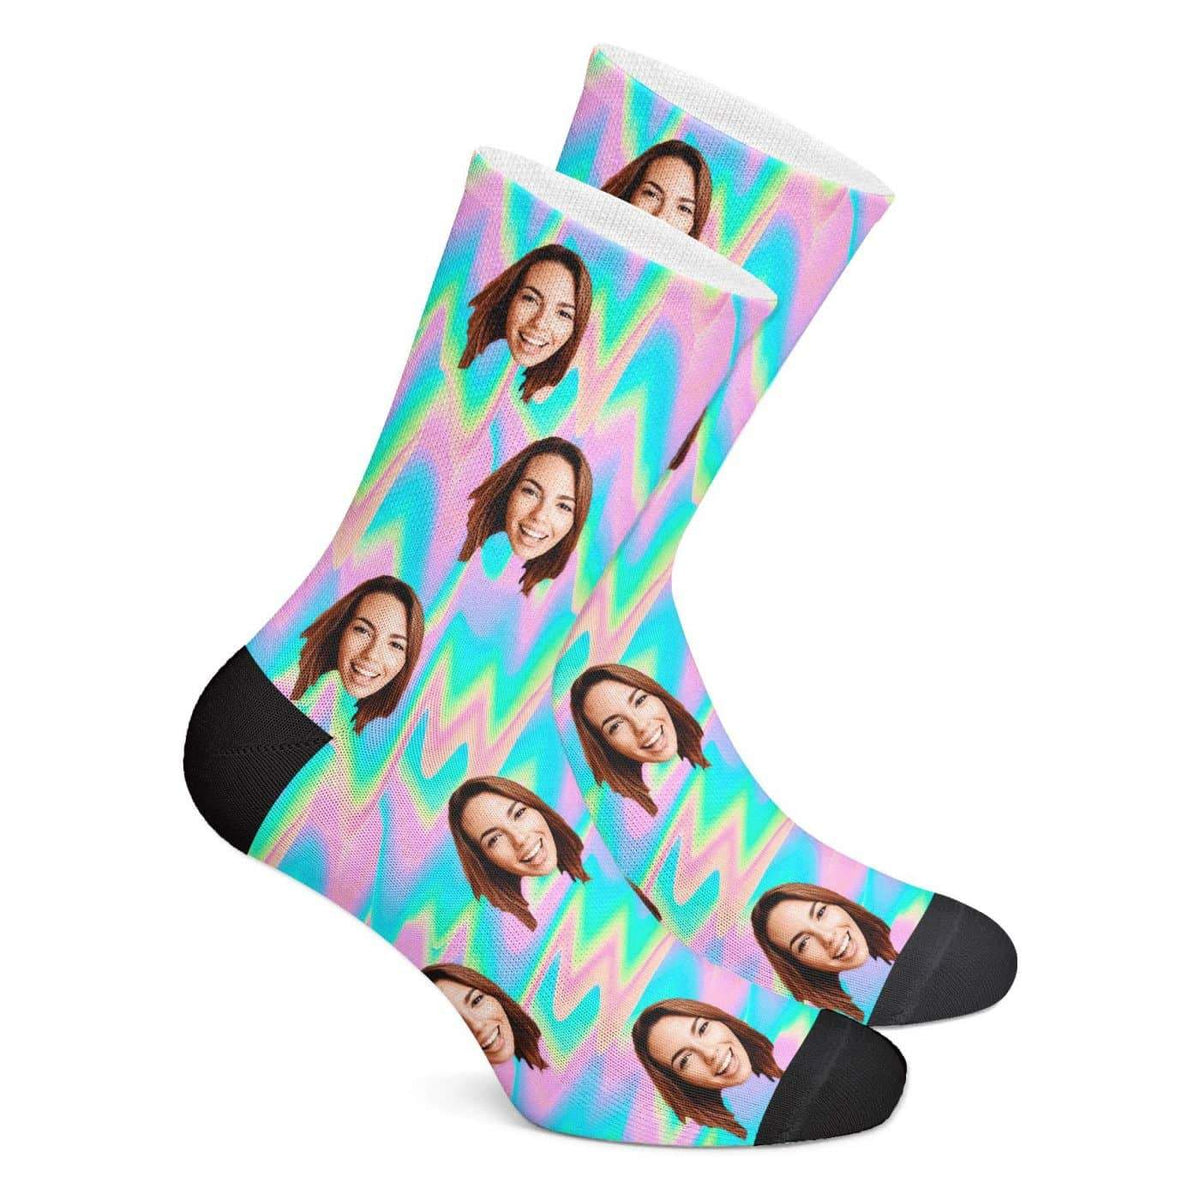 Custom Trippy Socks